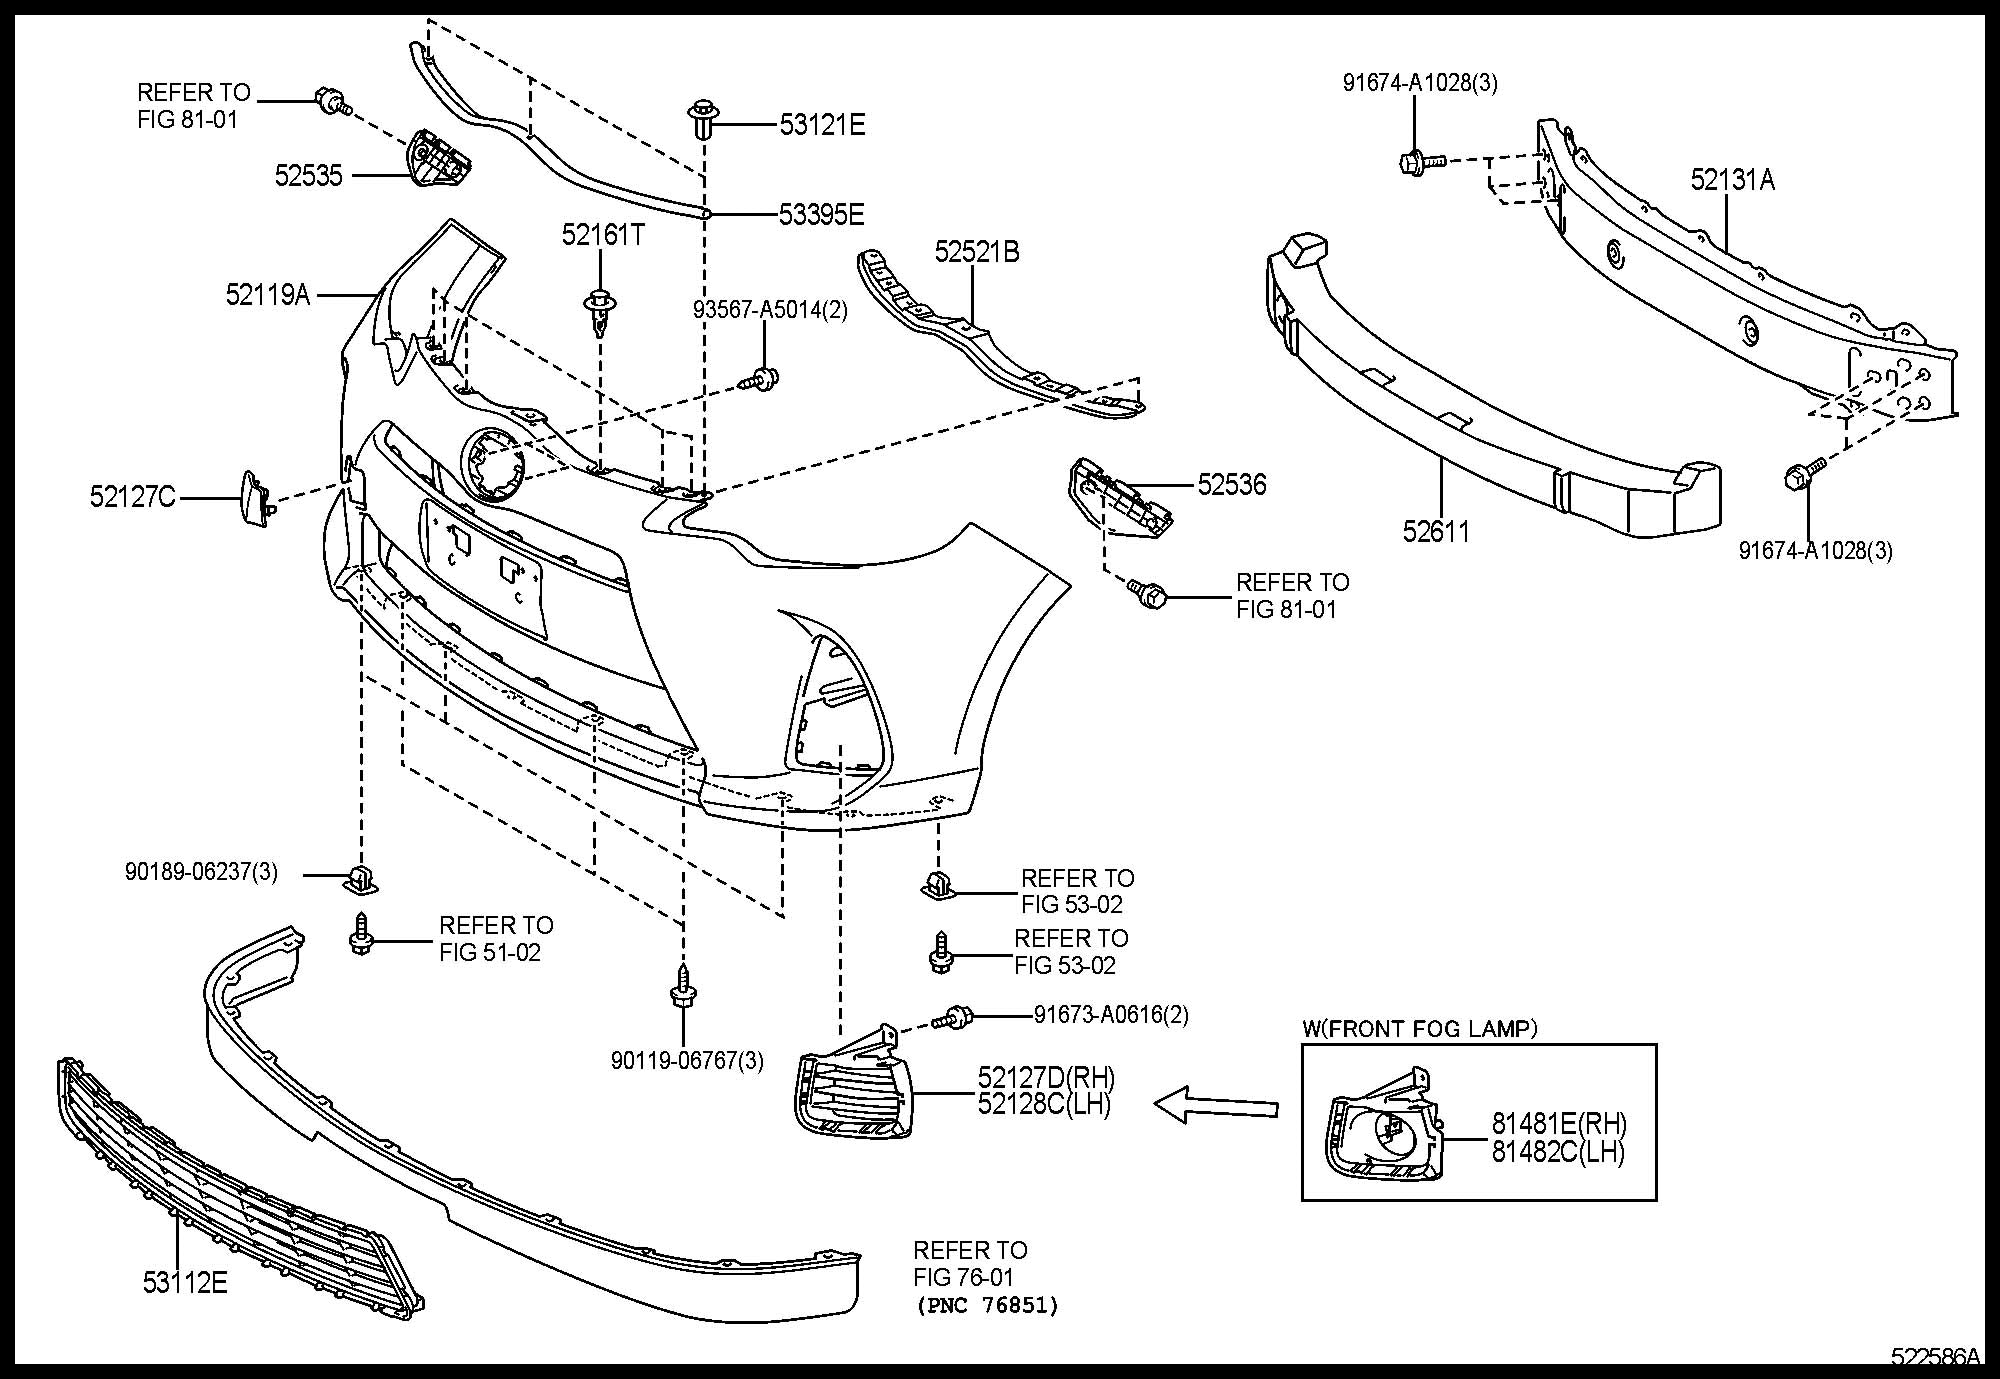 1996 toyota t100 brake line parts diagram wiring diagram rh vehiclewiring today 1996 Toyota Ta a Parts Diagram 1995 Toyota Camry Parts Diagram